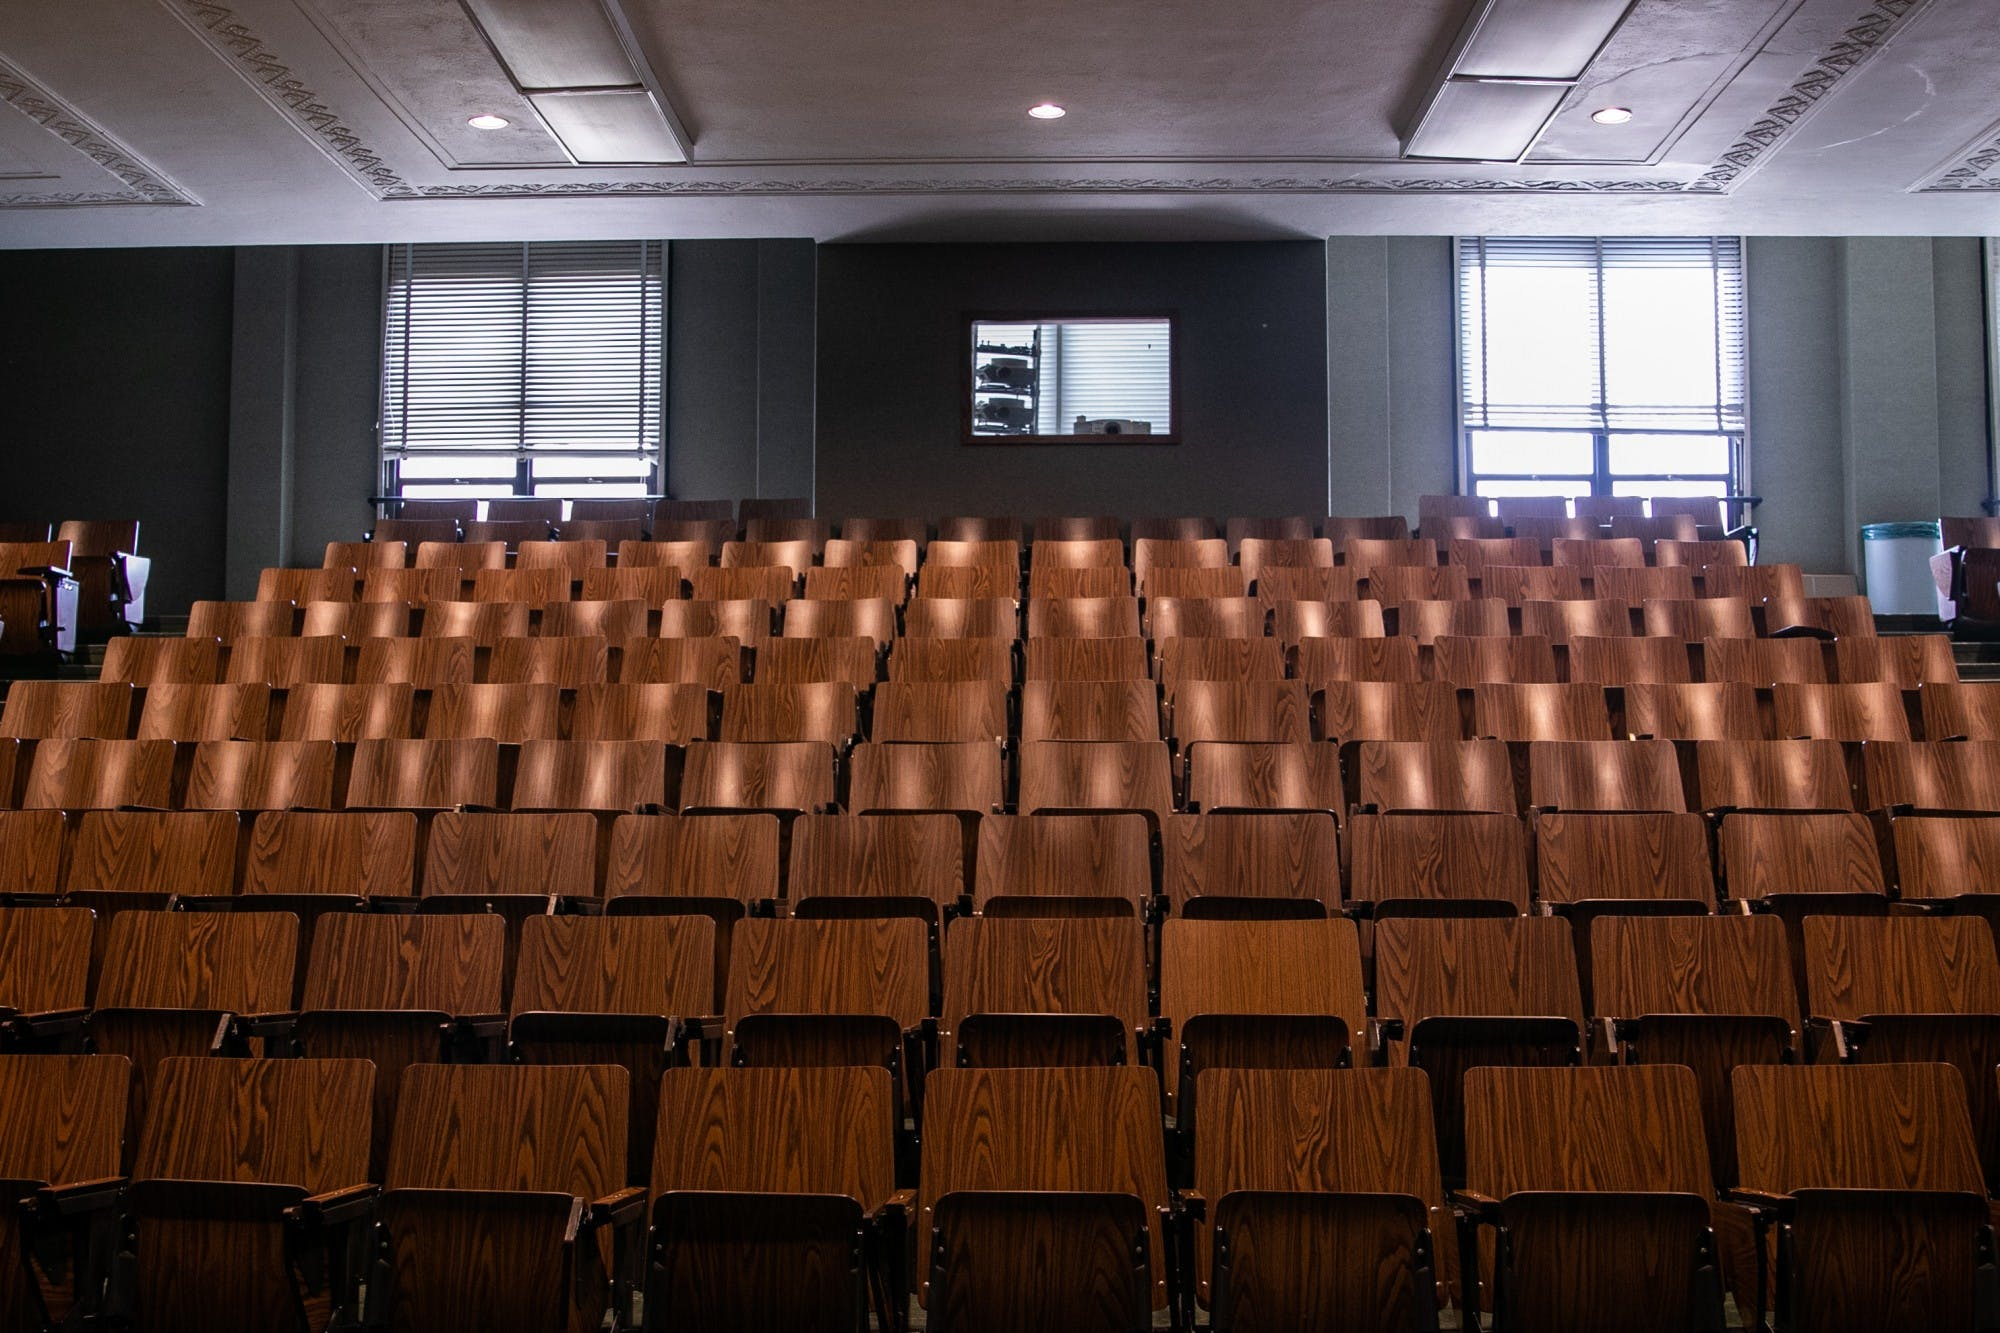 A lecture hall with rows of wooden seats sits empty.